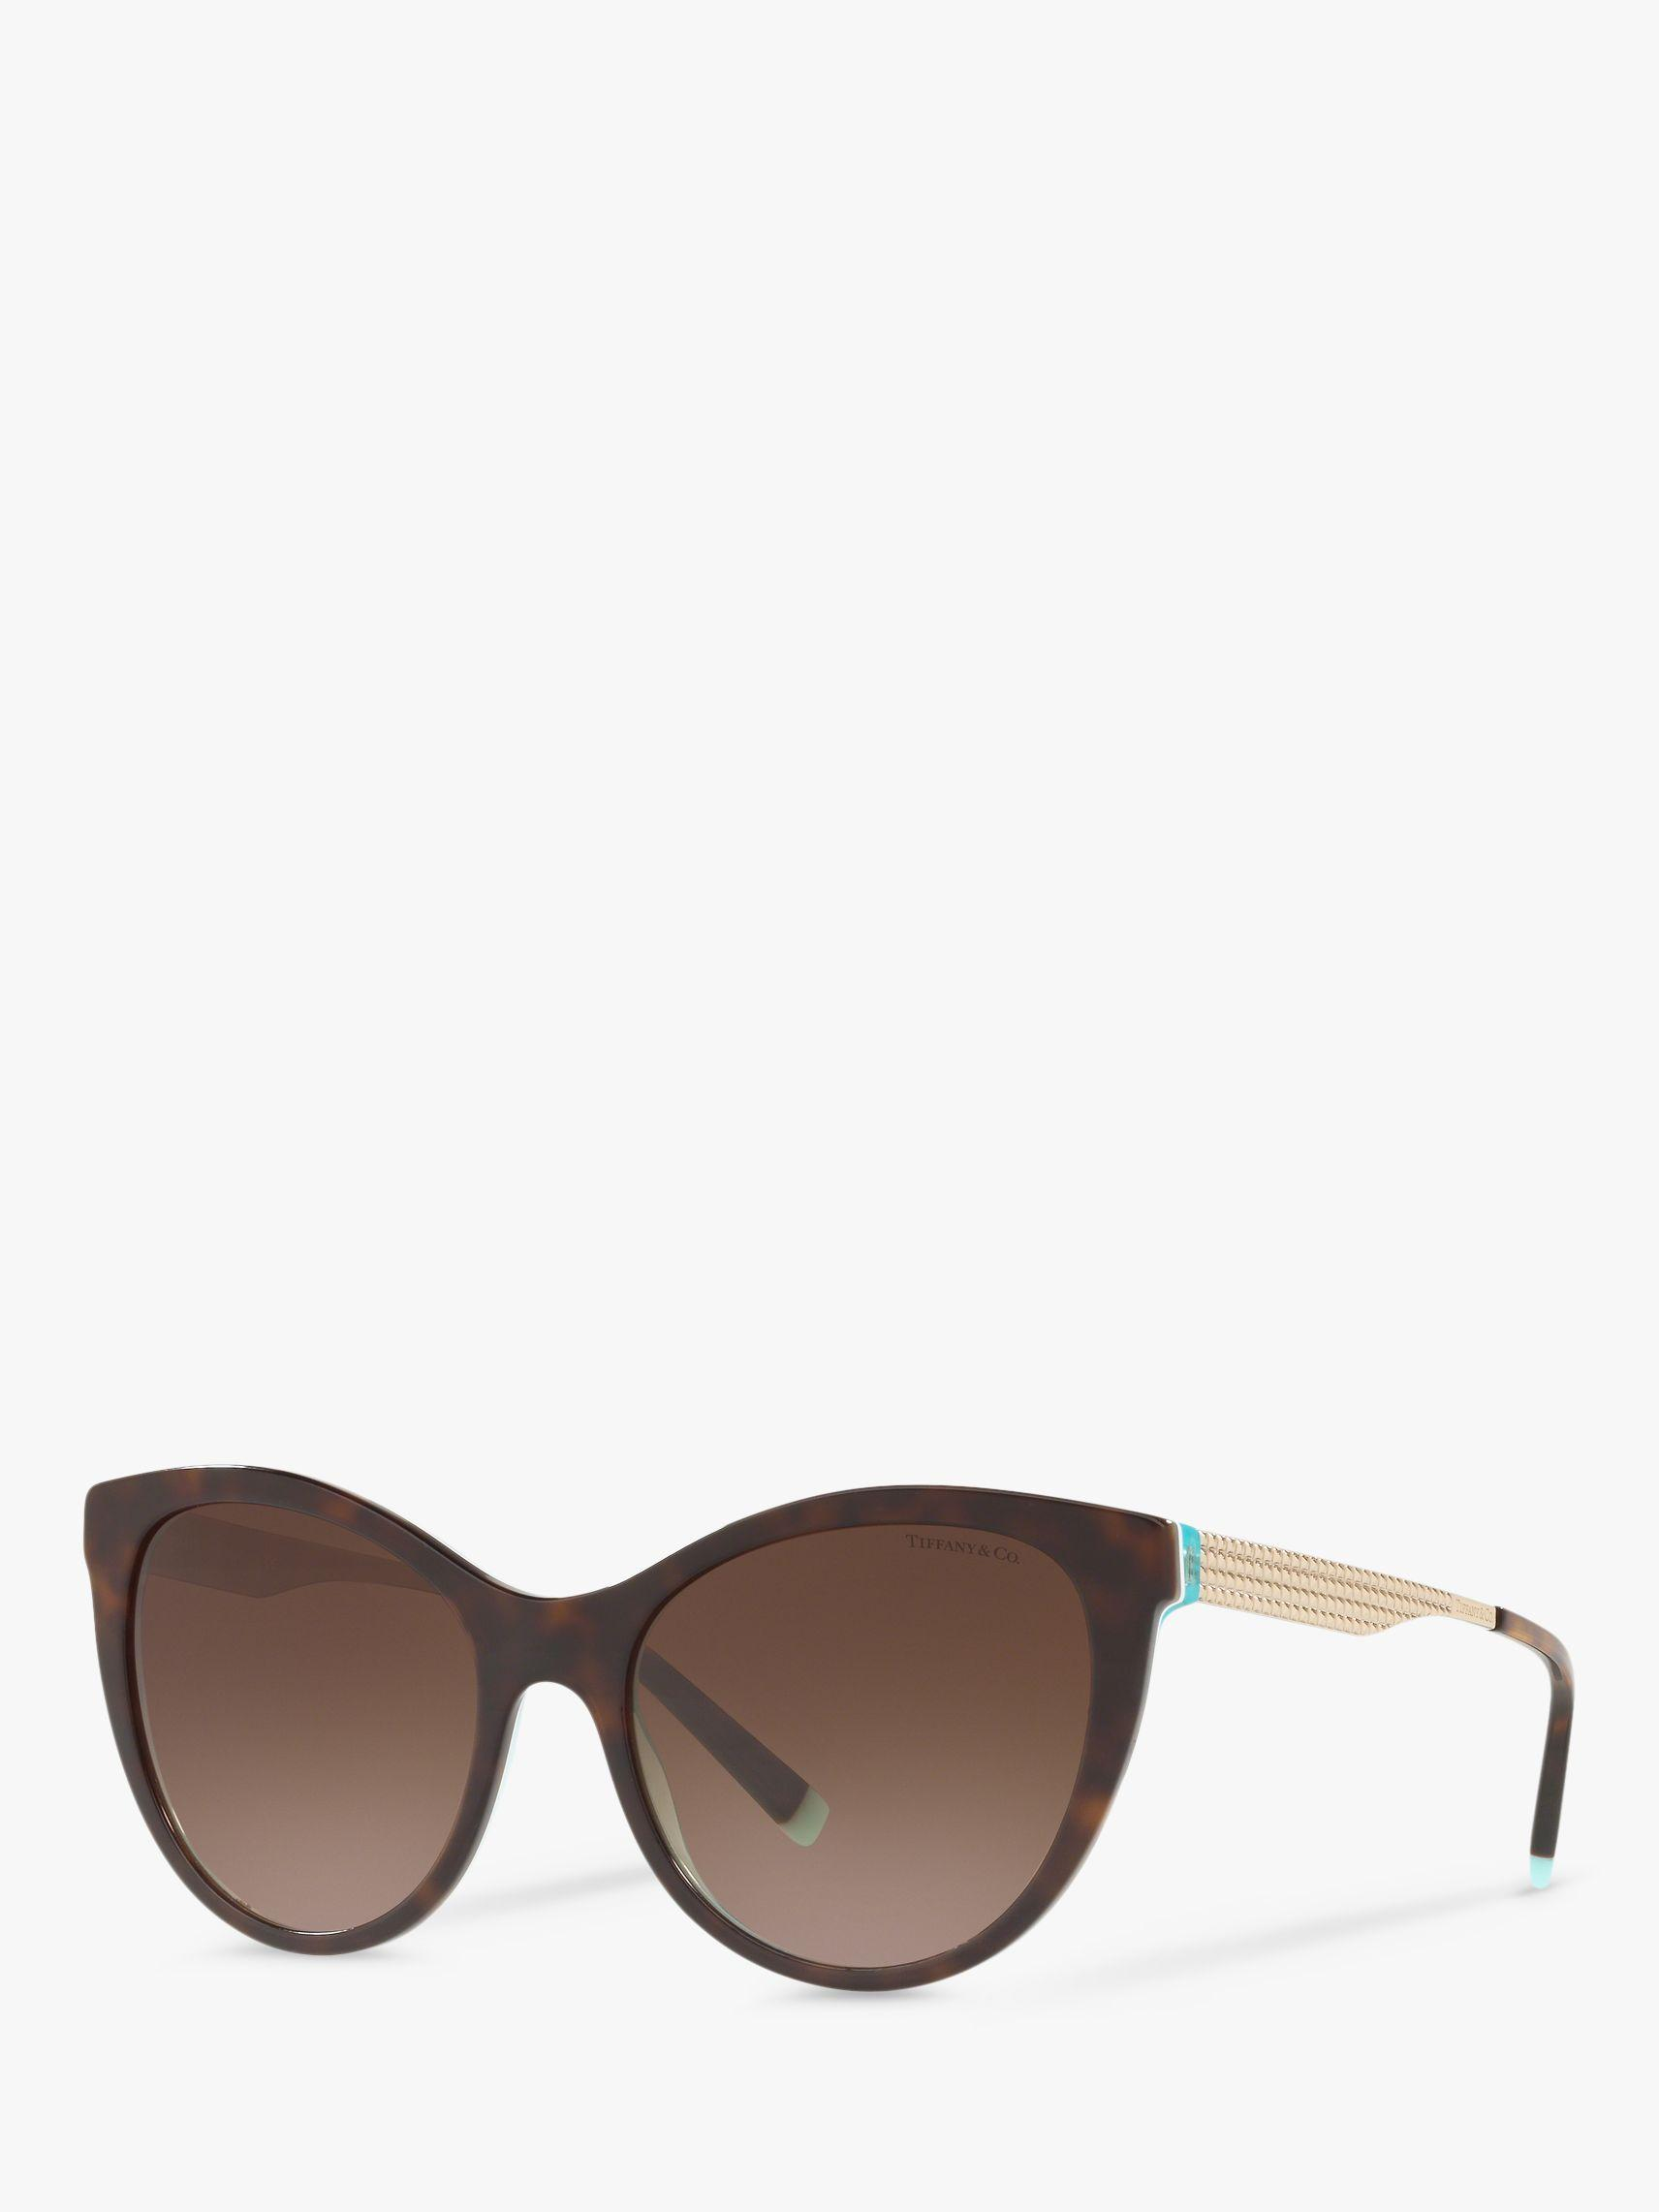 7579b4571b58 Tiffany & Co. Brown Tf4159 Women's Cat's Eye Sunglasses. £269 From John  Lewis and Partners